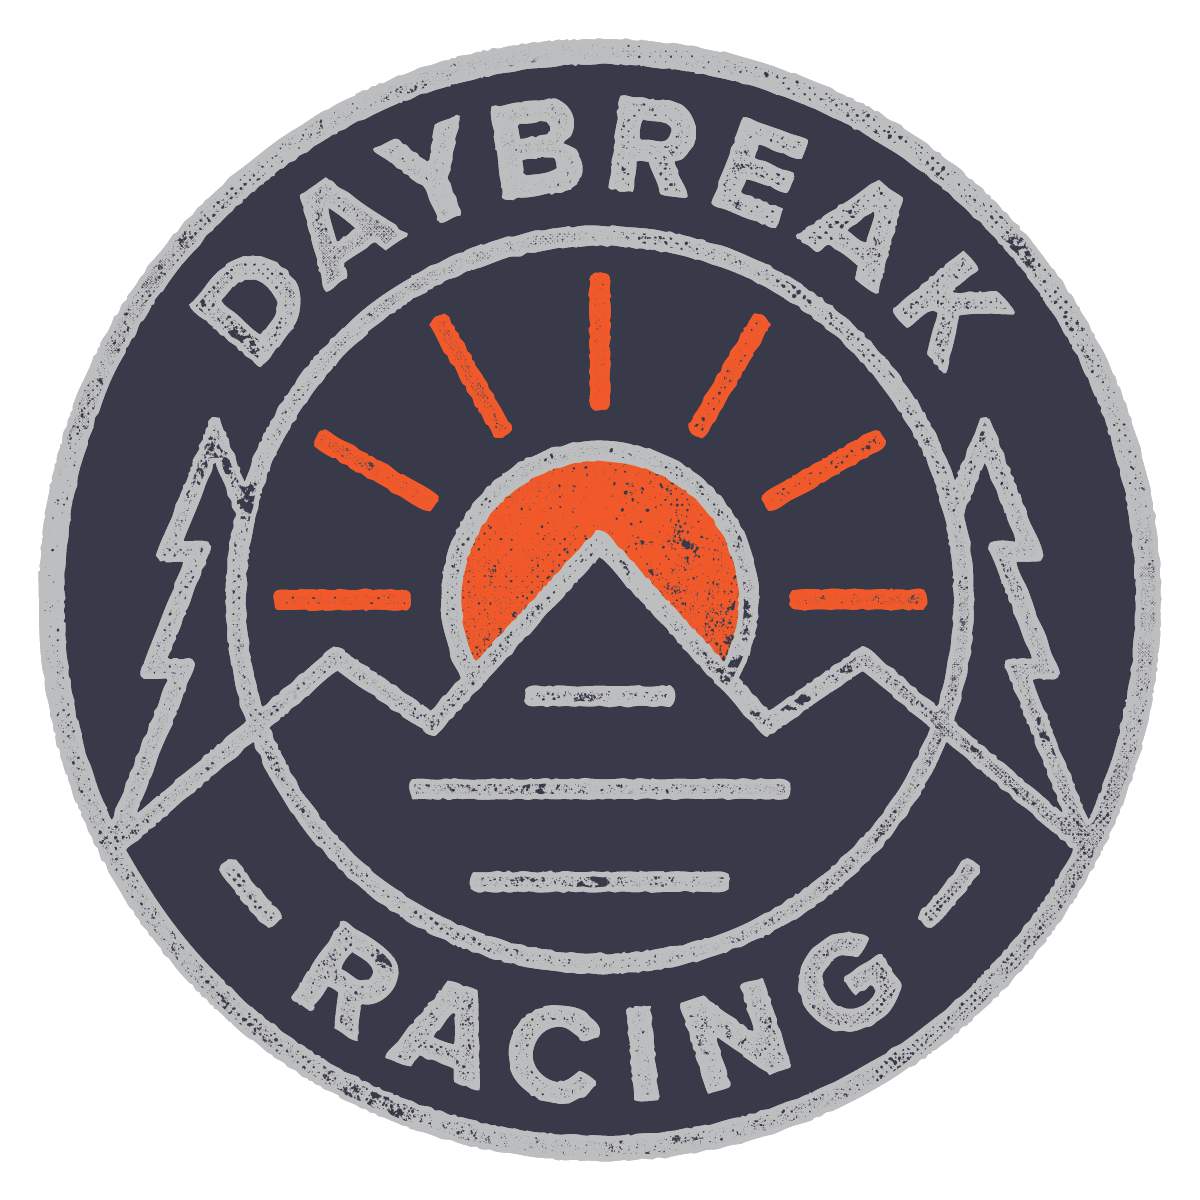 Daybreak Racing